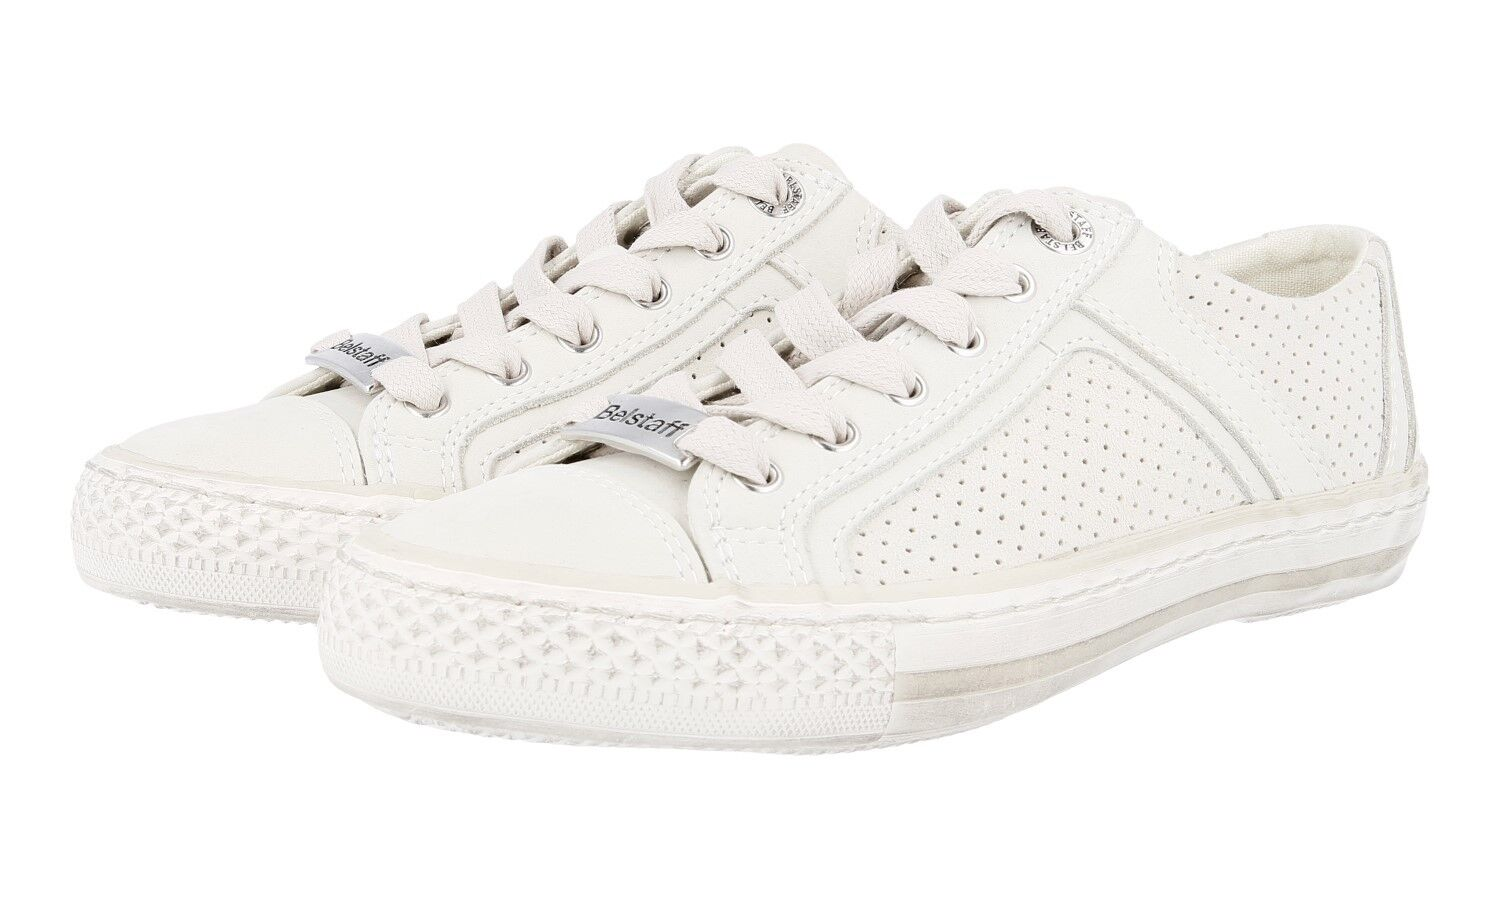 BELSTAFF SNEAKERS SHOES DRAKE 757388 Off White New New 37 37,5